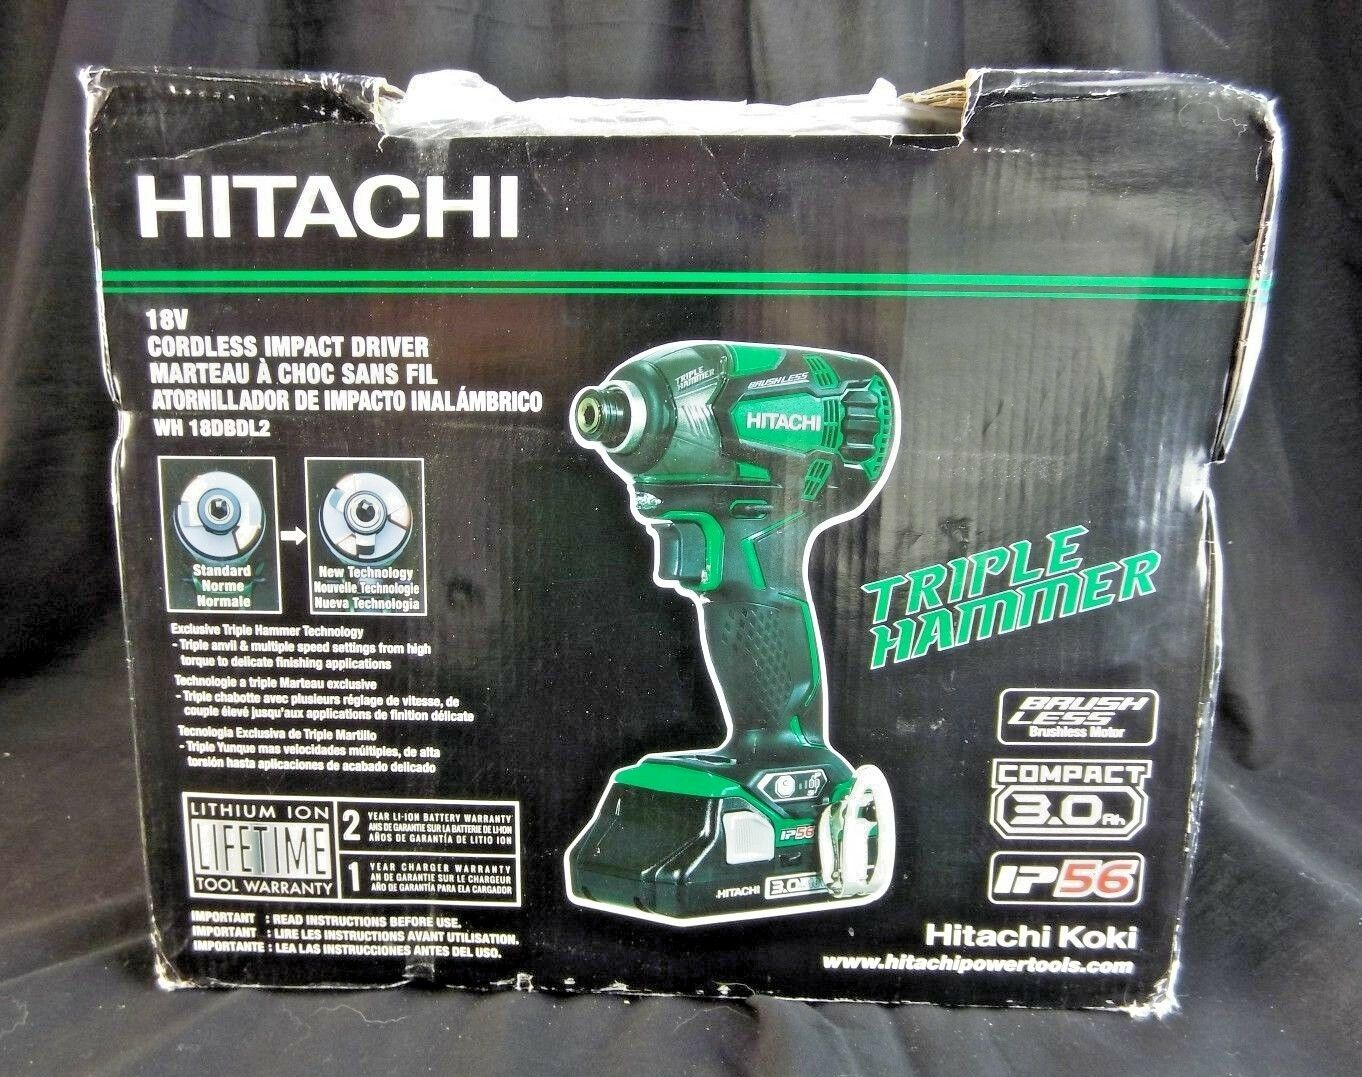 Hitachi WH18DBDL2 18V 3.0 Ah Cordless Lithium-Ion Brushless